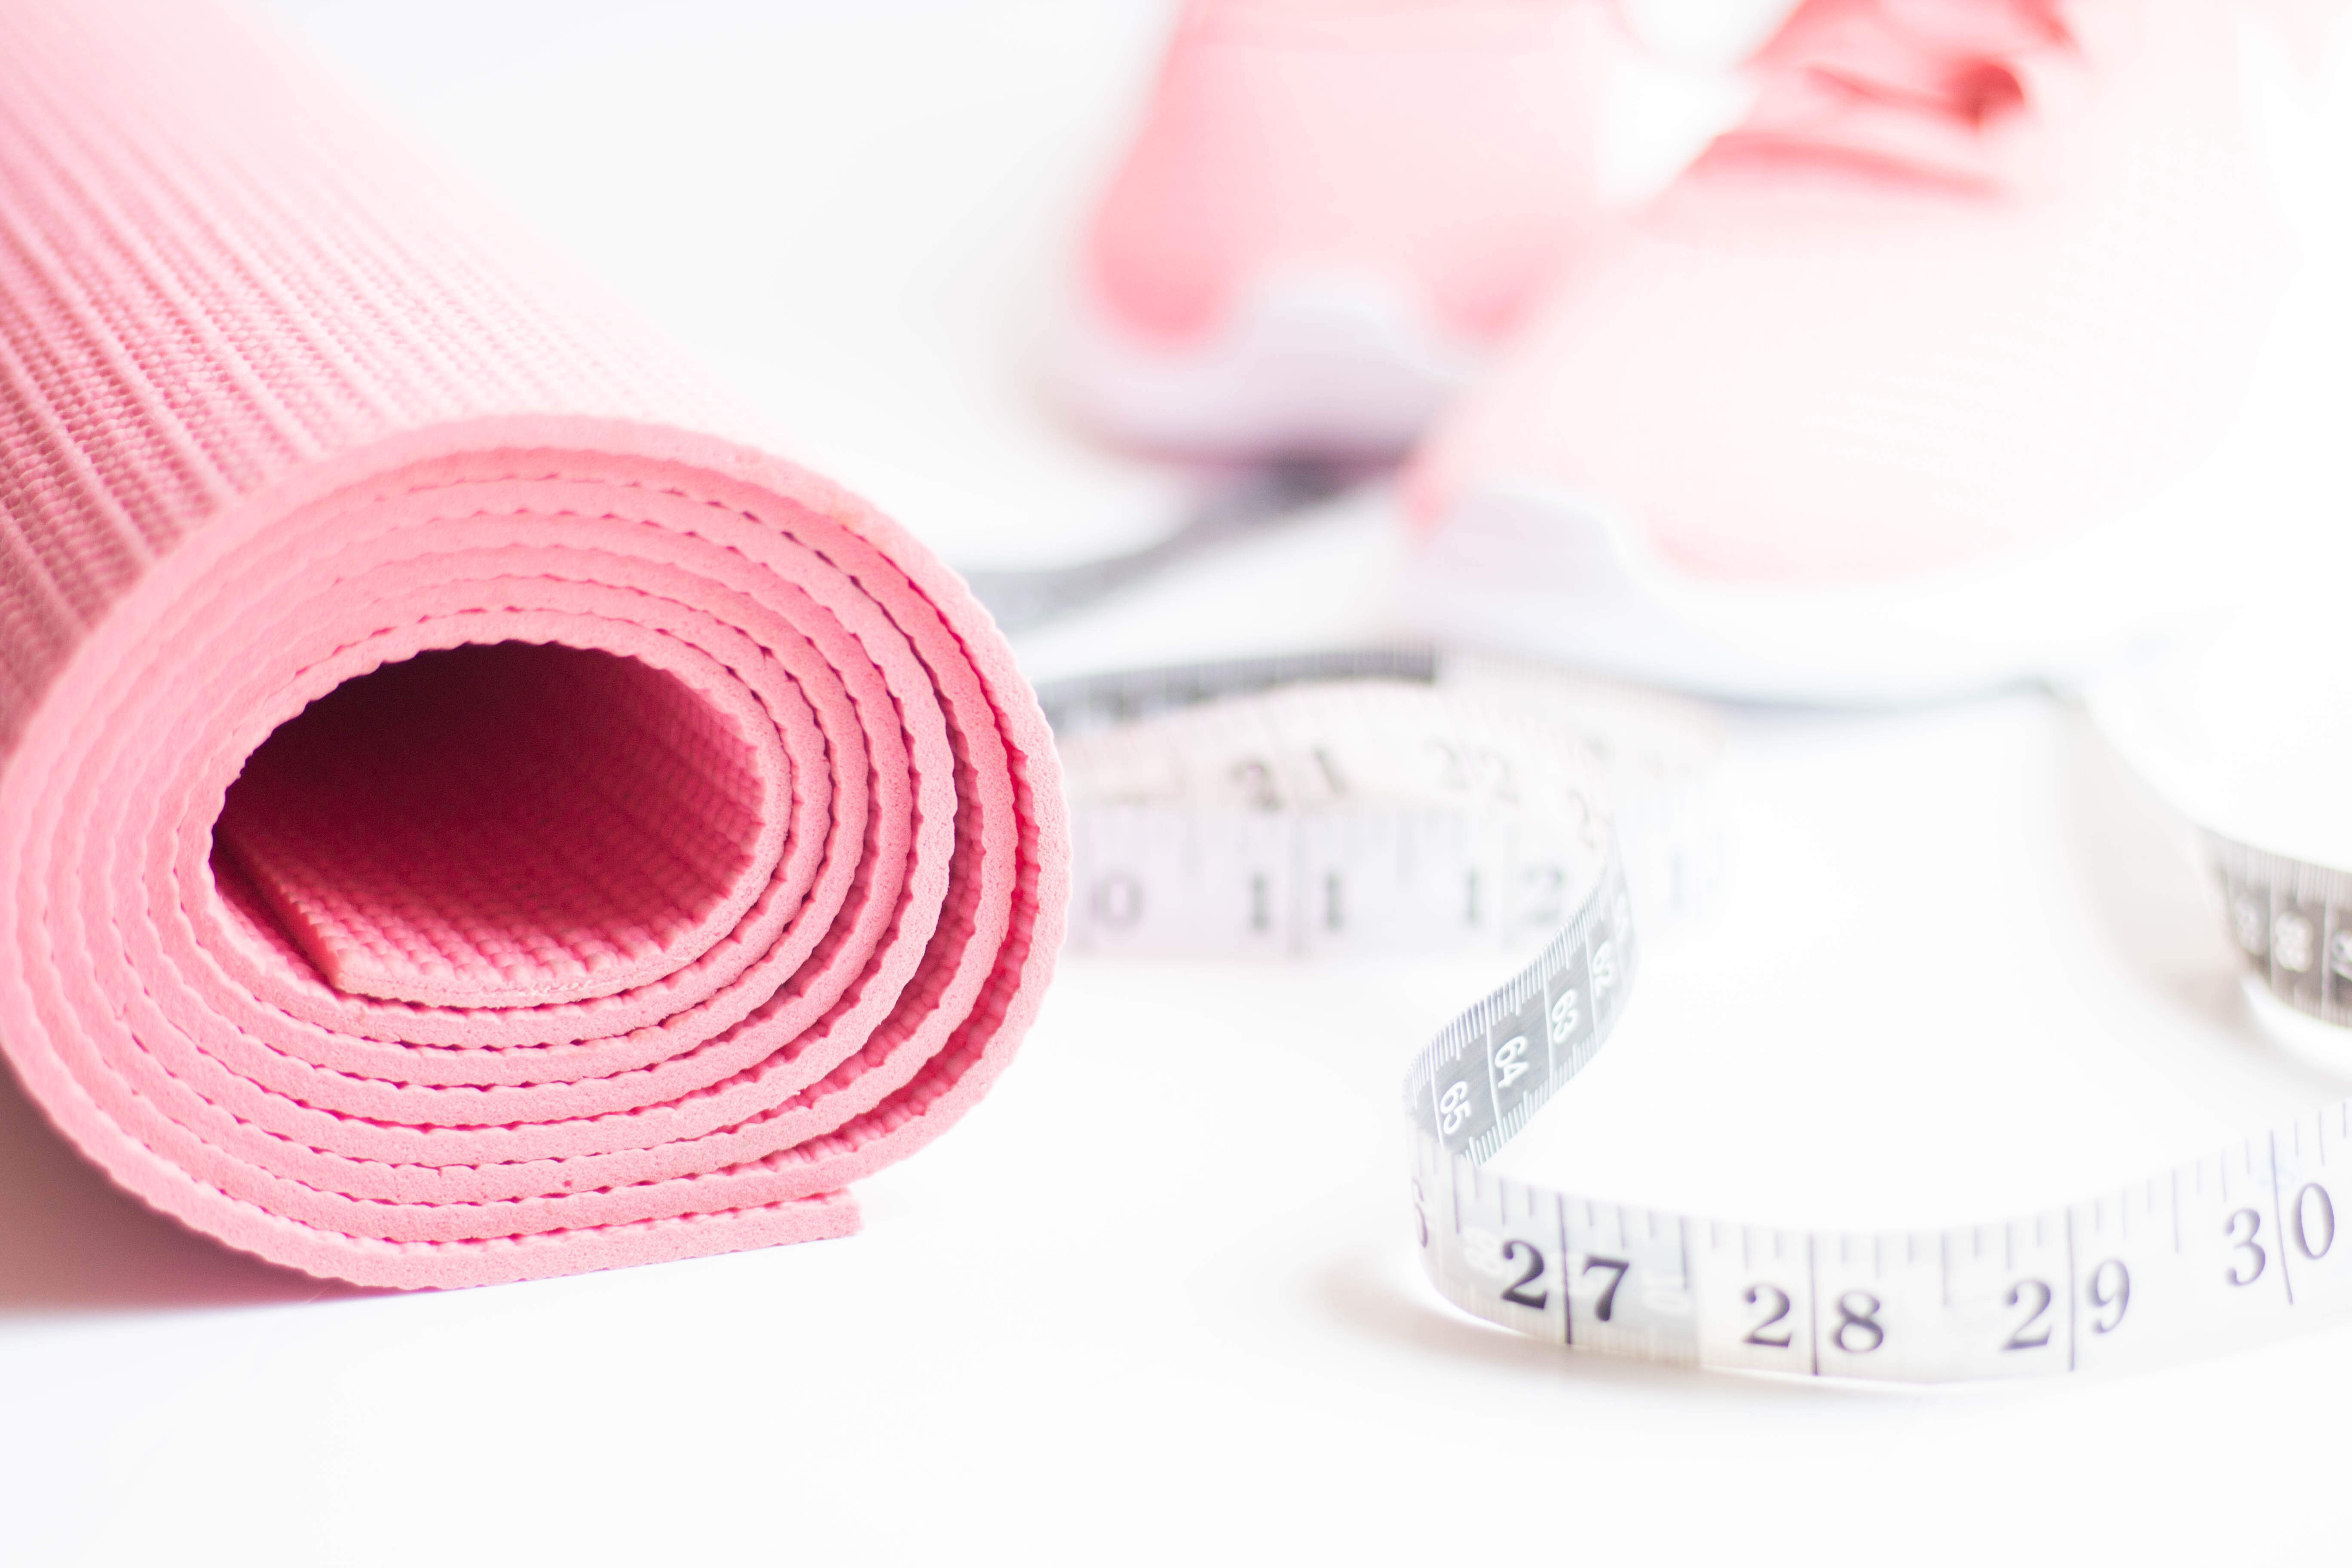 Yoga mat and measuring tape. Luara from Mom Connection helps help moms lose weight and talking about why moms have a hard time losing weight.